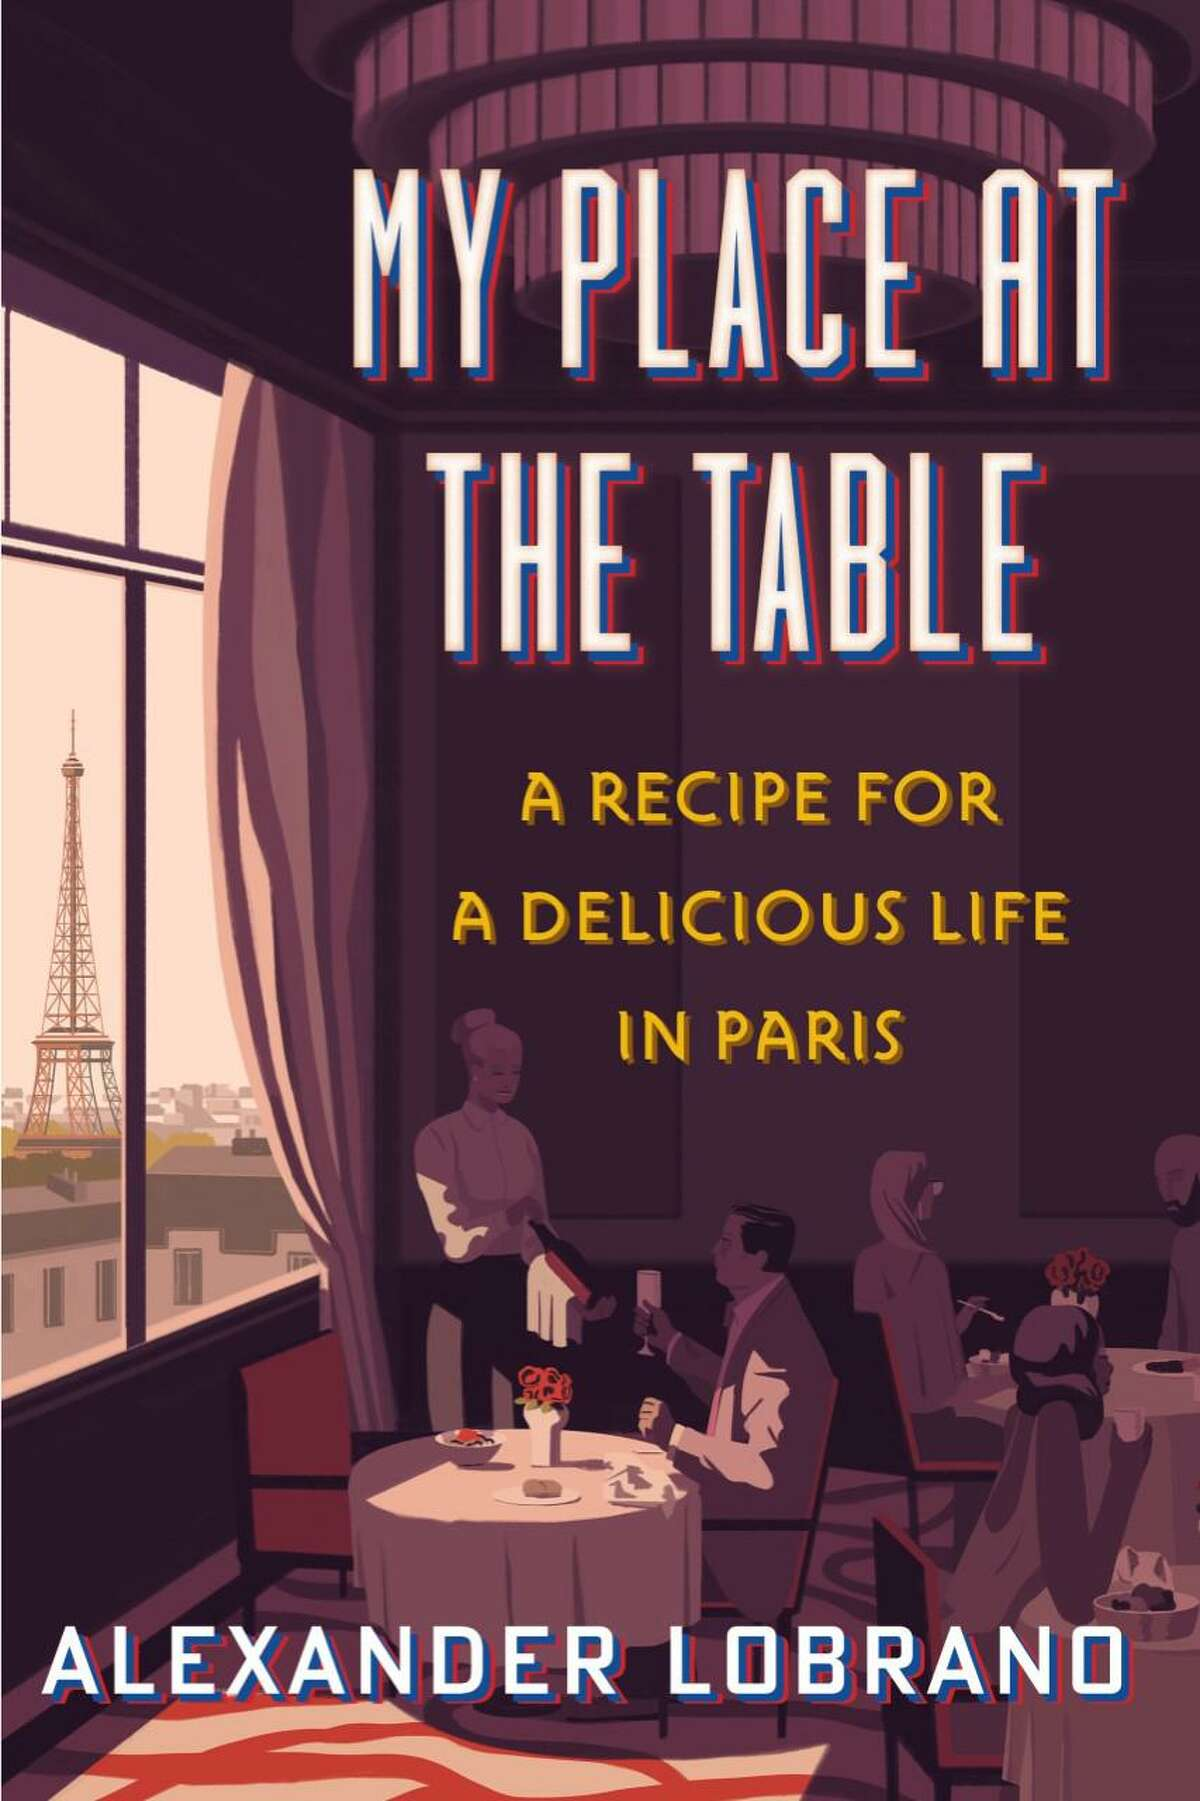 """The Westport Library is hosting author Alexander Lobrano in a conversation with Westport's own Kelle Ruden at 7 p.m. on Tuesday, Aug. 31, to discuss Lobrano's memoir book that is titled: """"My Place At the Table: A Recipe for a Delicious Life in Paris."""" Pictured is a photo of the book cover for the book."""